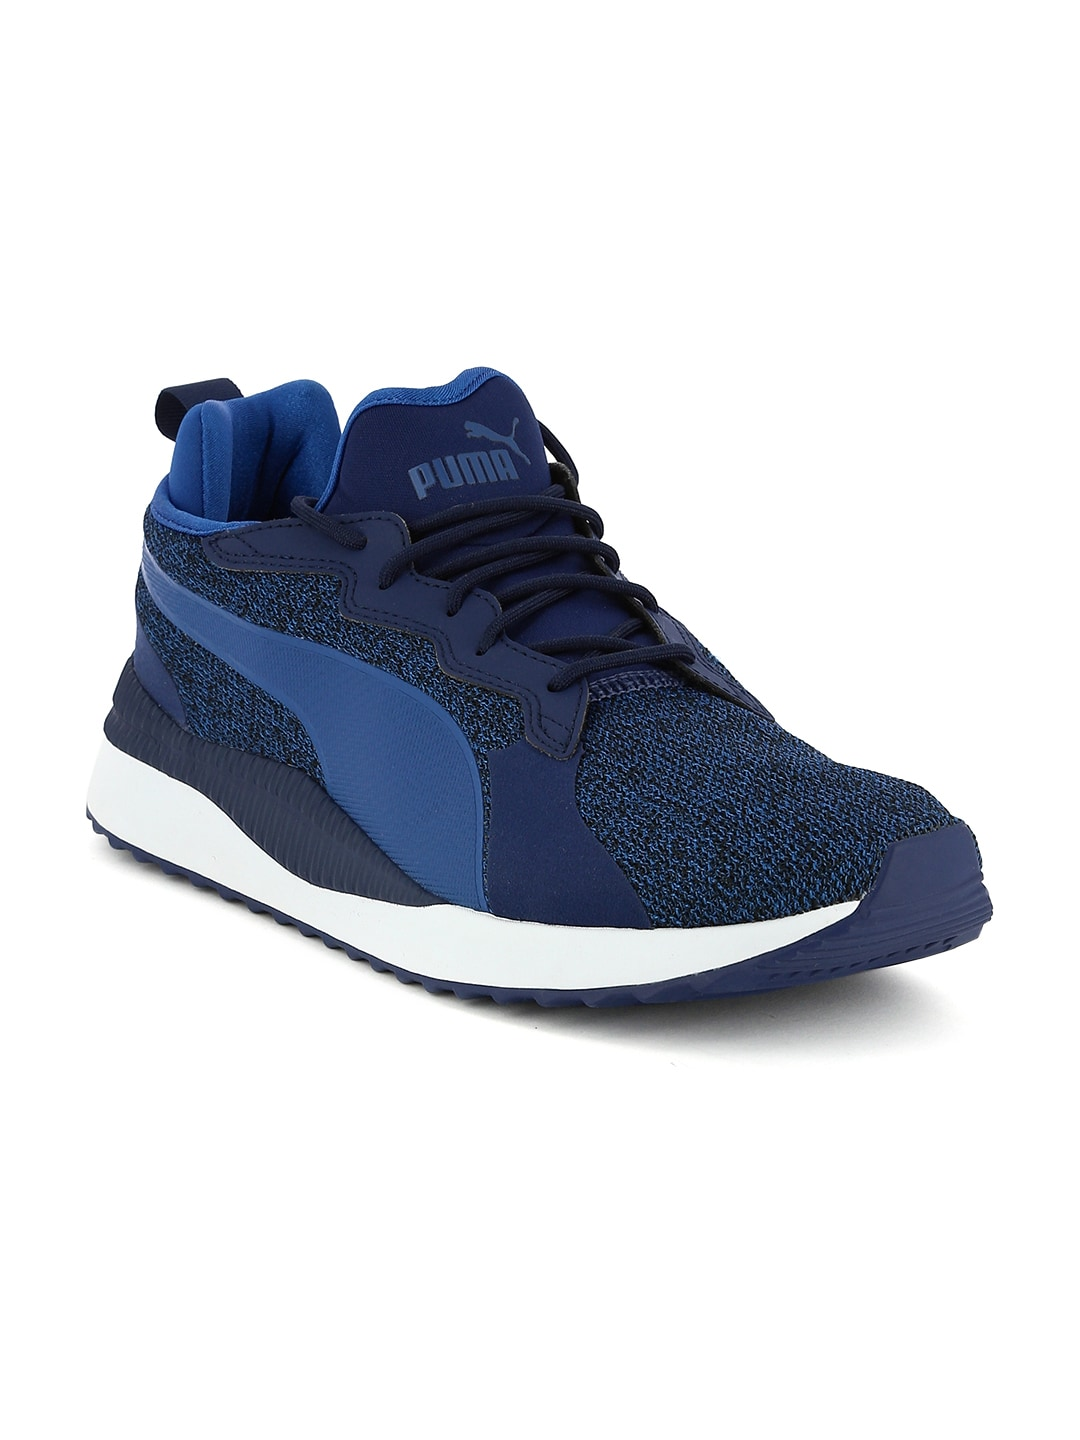 Buy Puma Men Charcoal Grey   Black Pacer Next Tw Knit Sneakers ... bb499a918